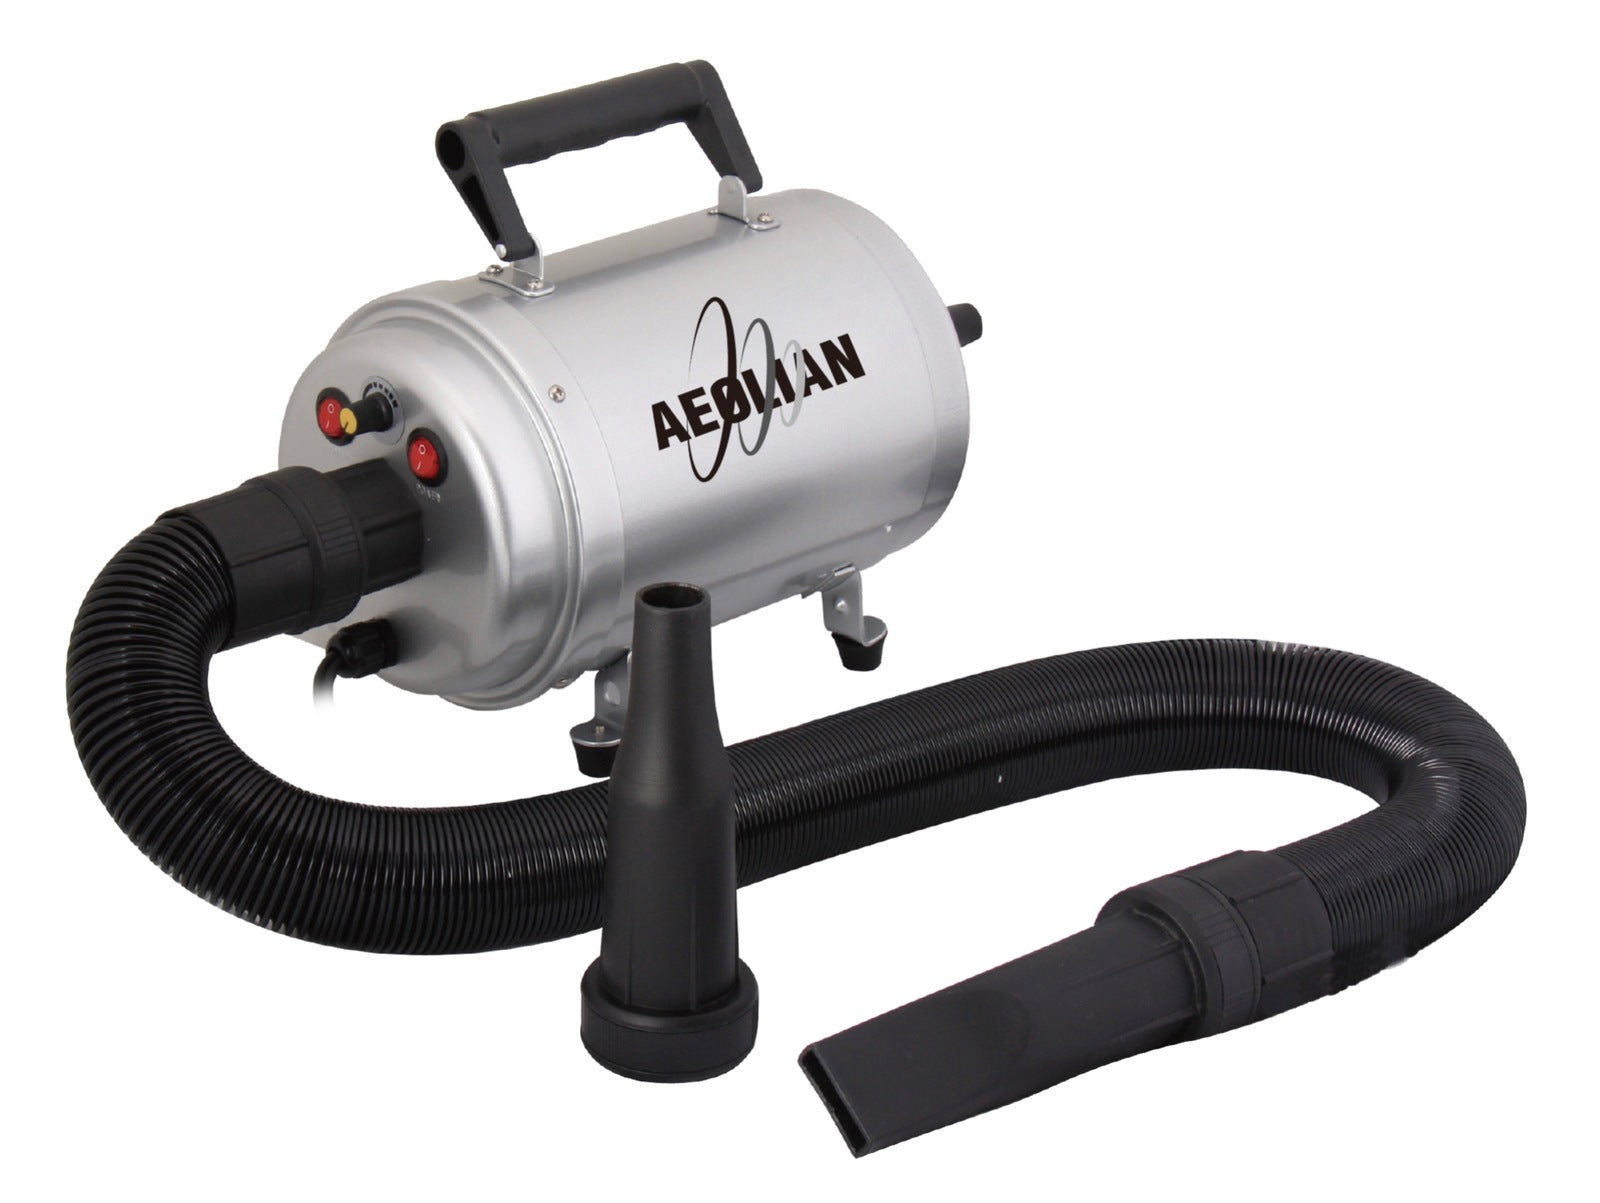 Aeolian Blaster Dryer with Heater